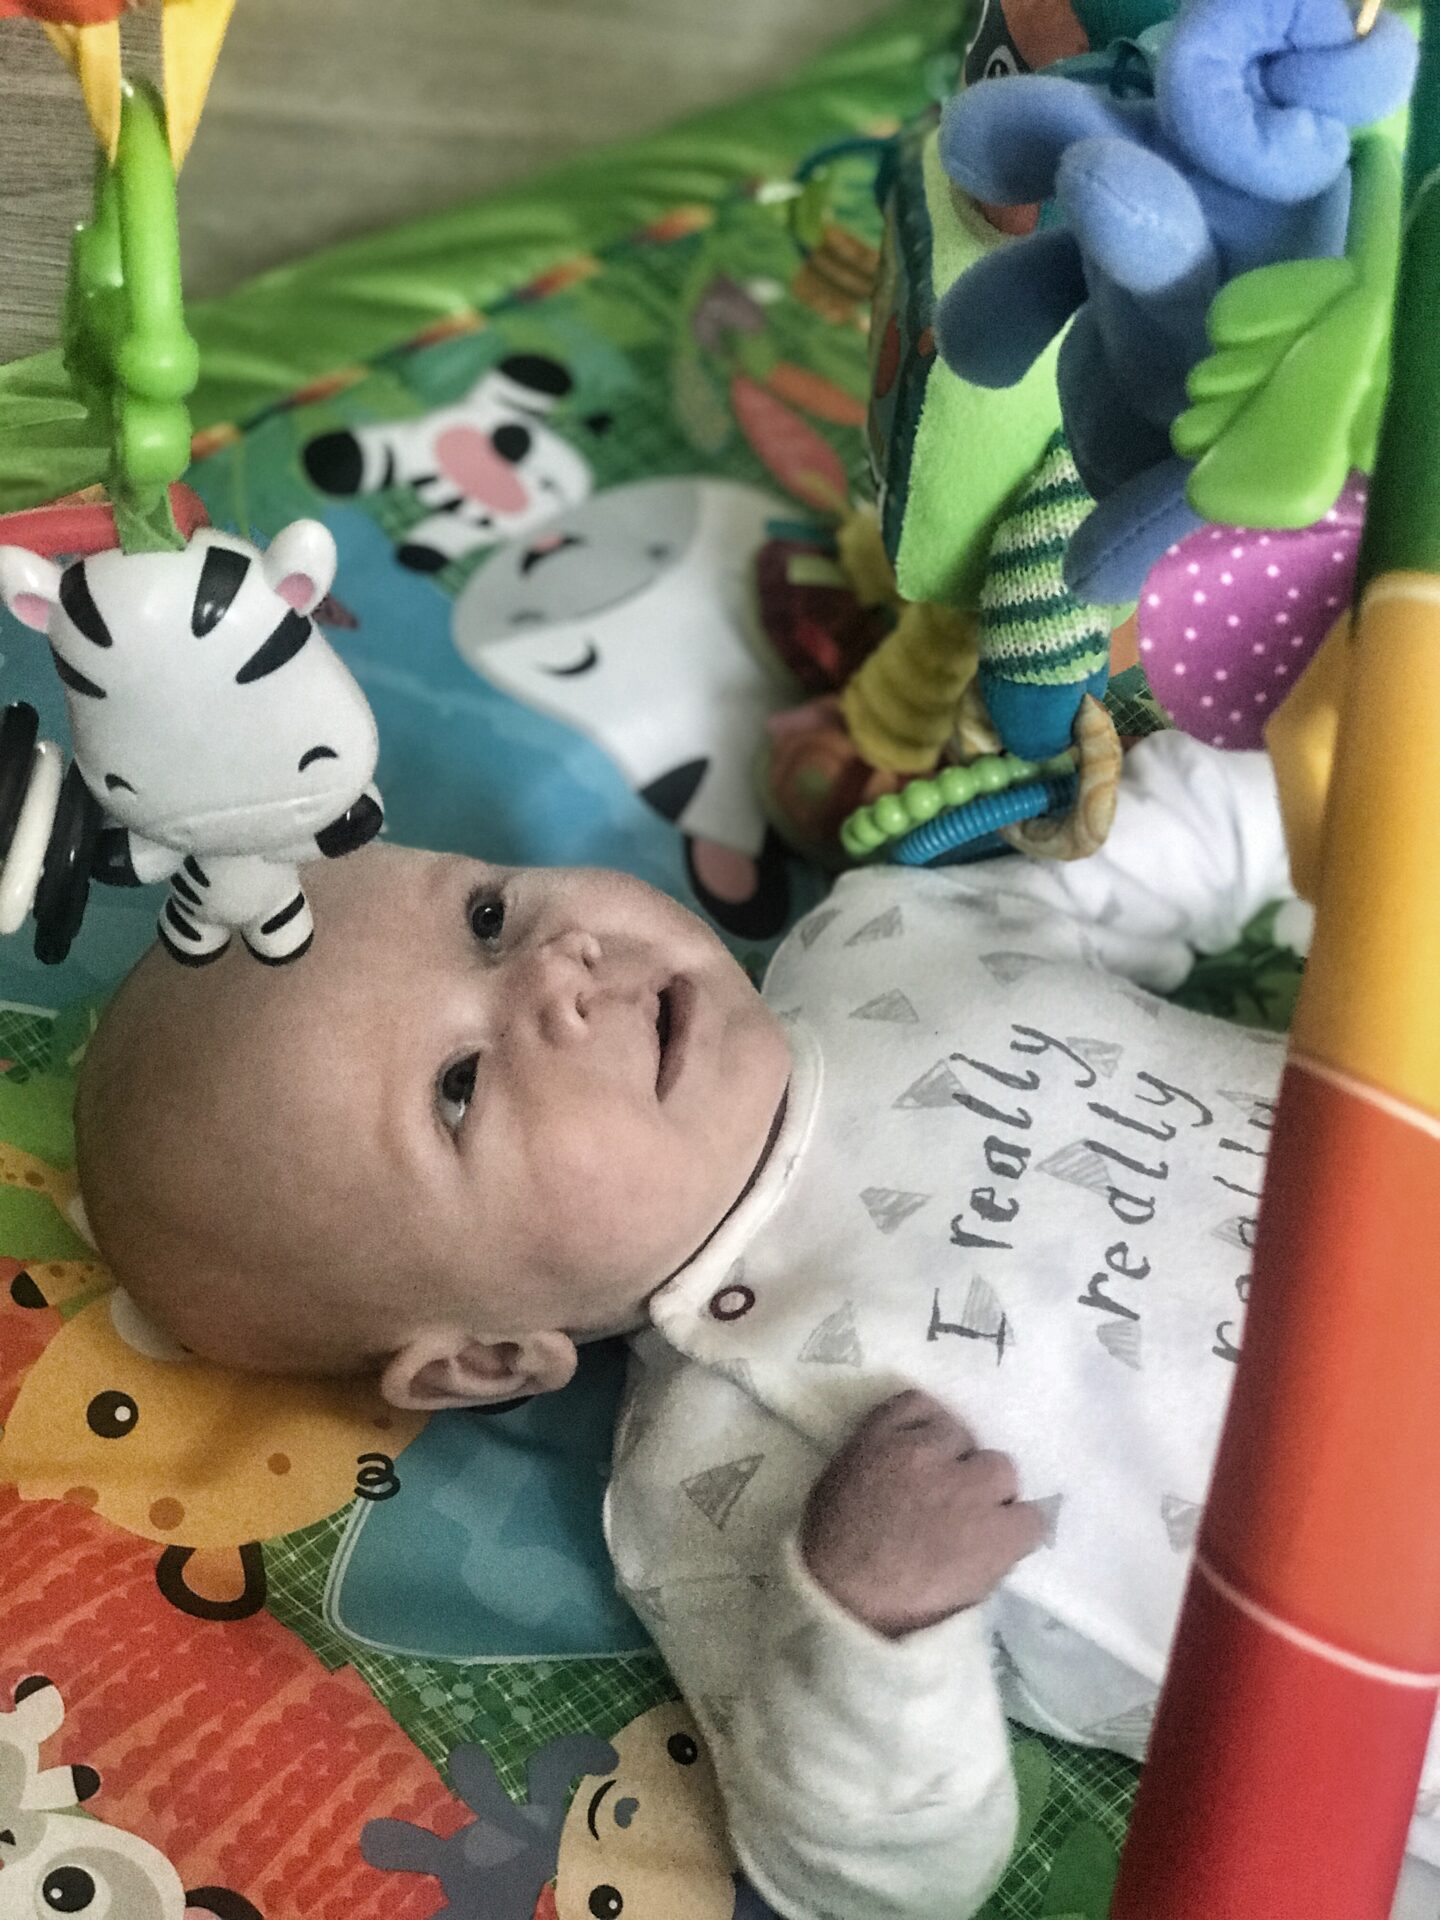 Felix lying on his Fisher Price playmat looking up at a toy